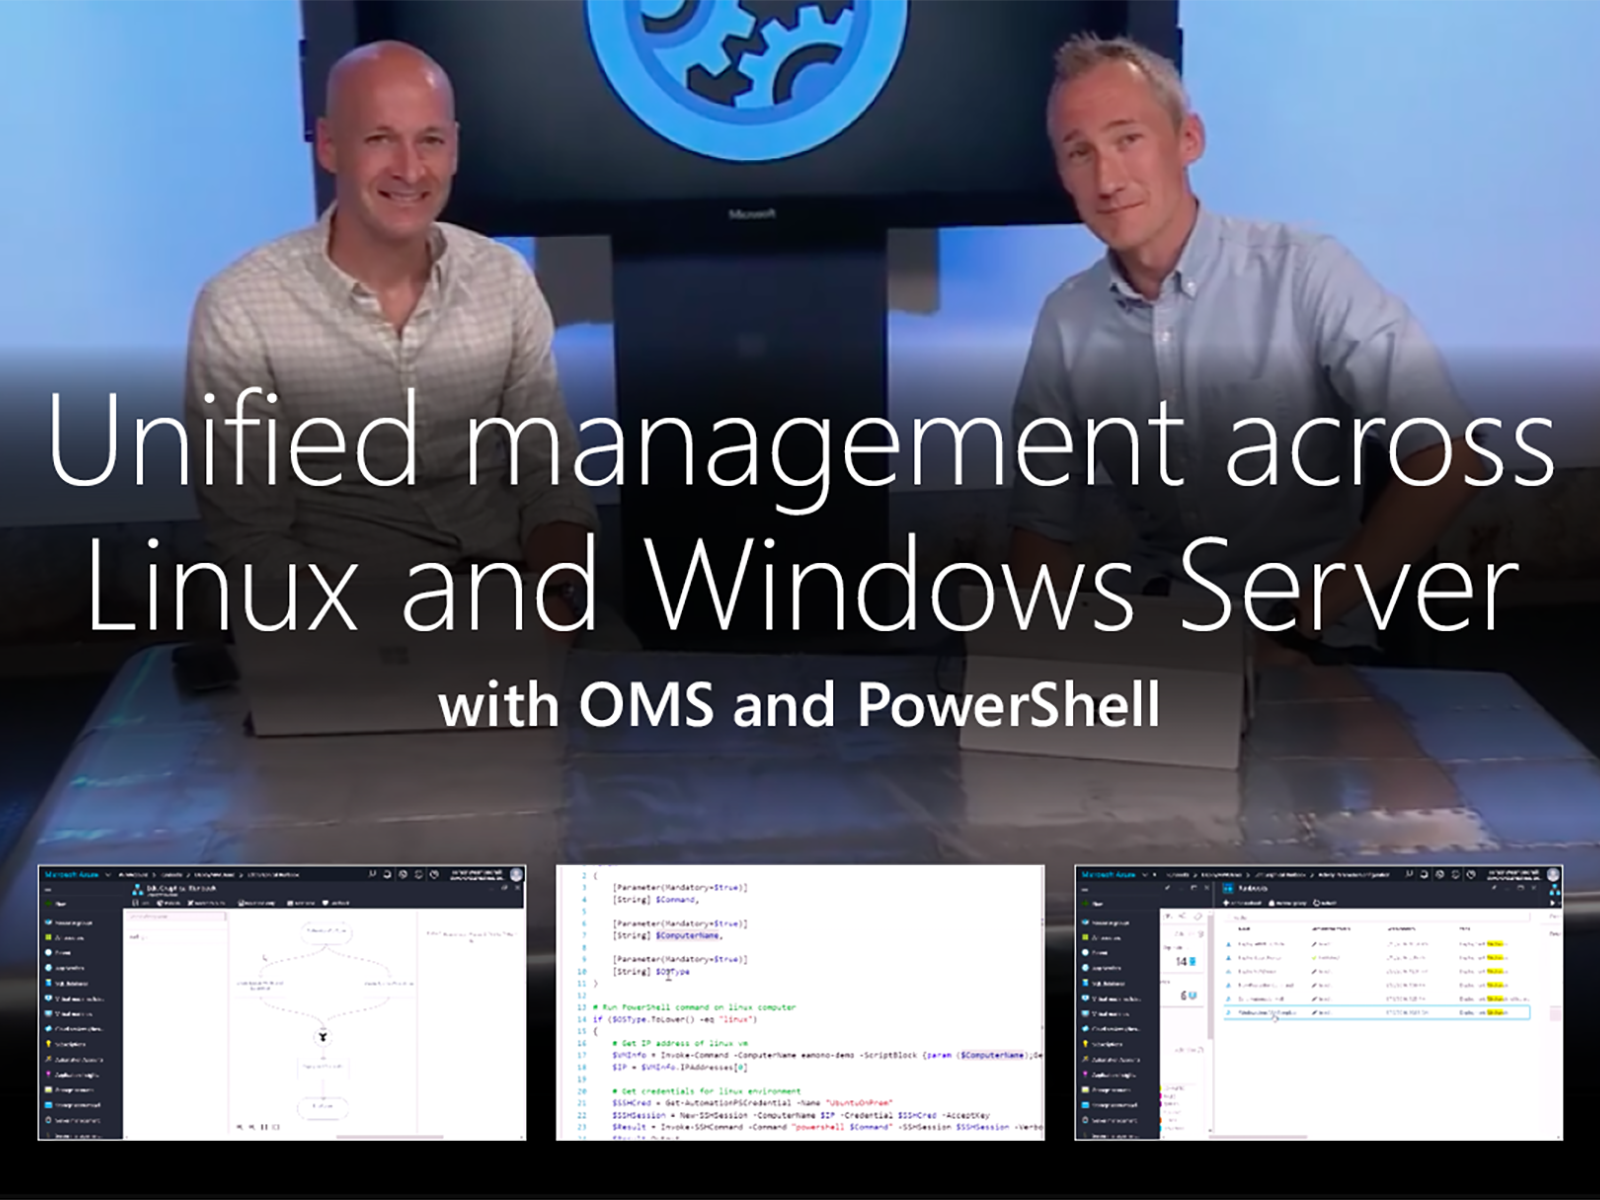 Artwork for Unified management across Linux and Windows Server